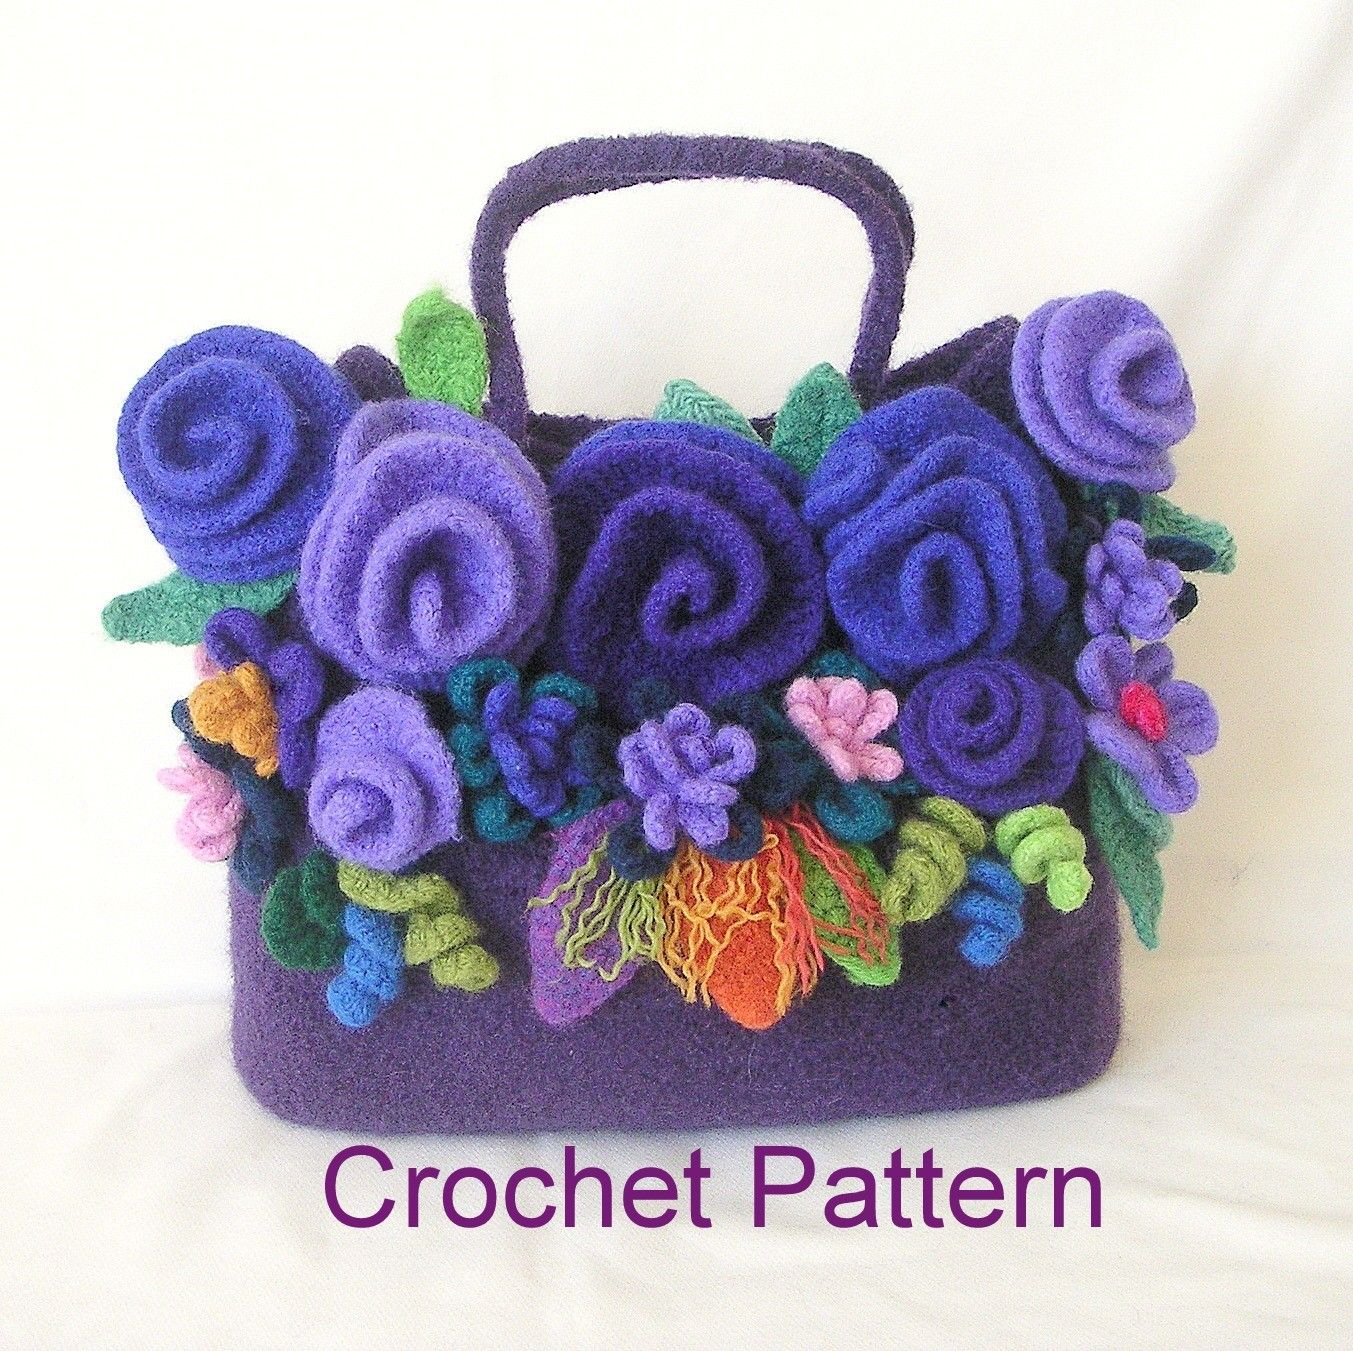 Crochet felted flower bag pattern by graceknittingpattern crochet felted flower bag pattern by graceknittingpattern 2399 bankloansurffo Image collections